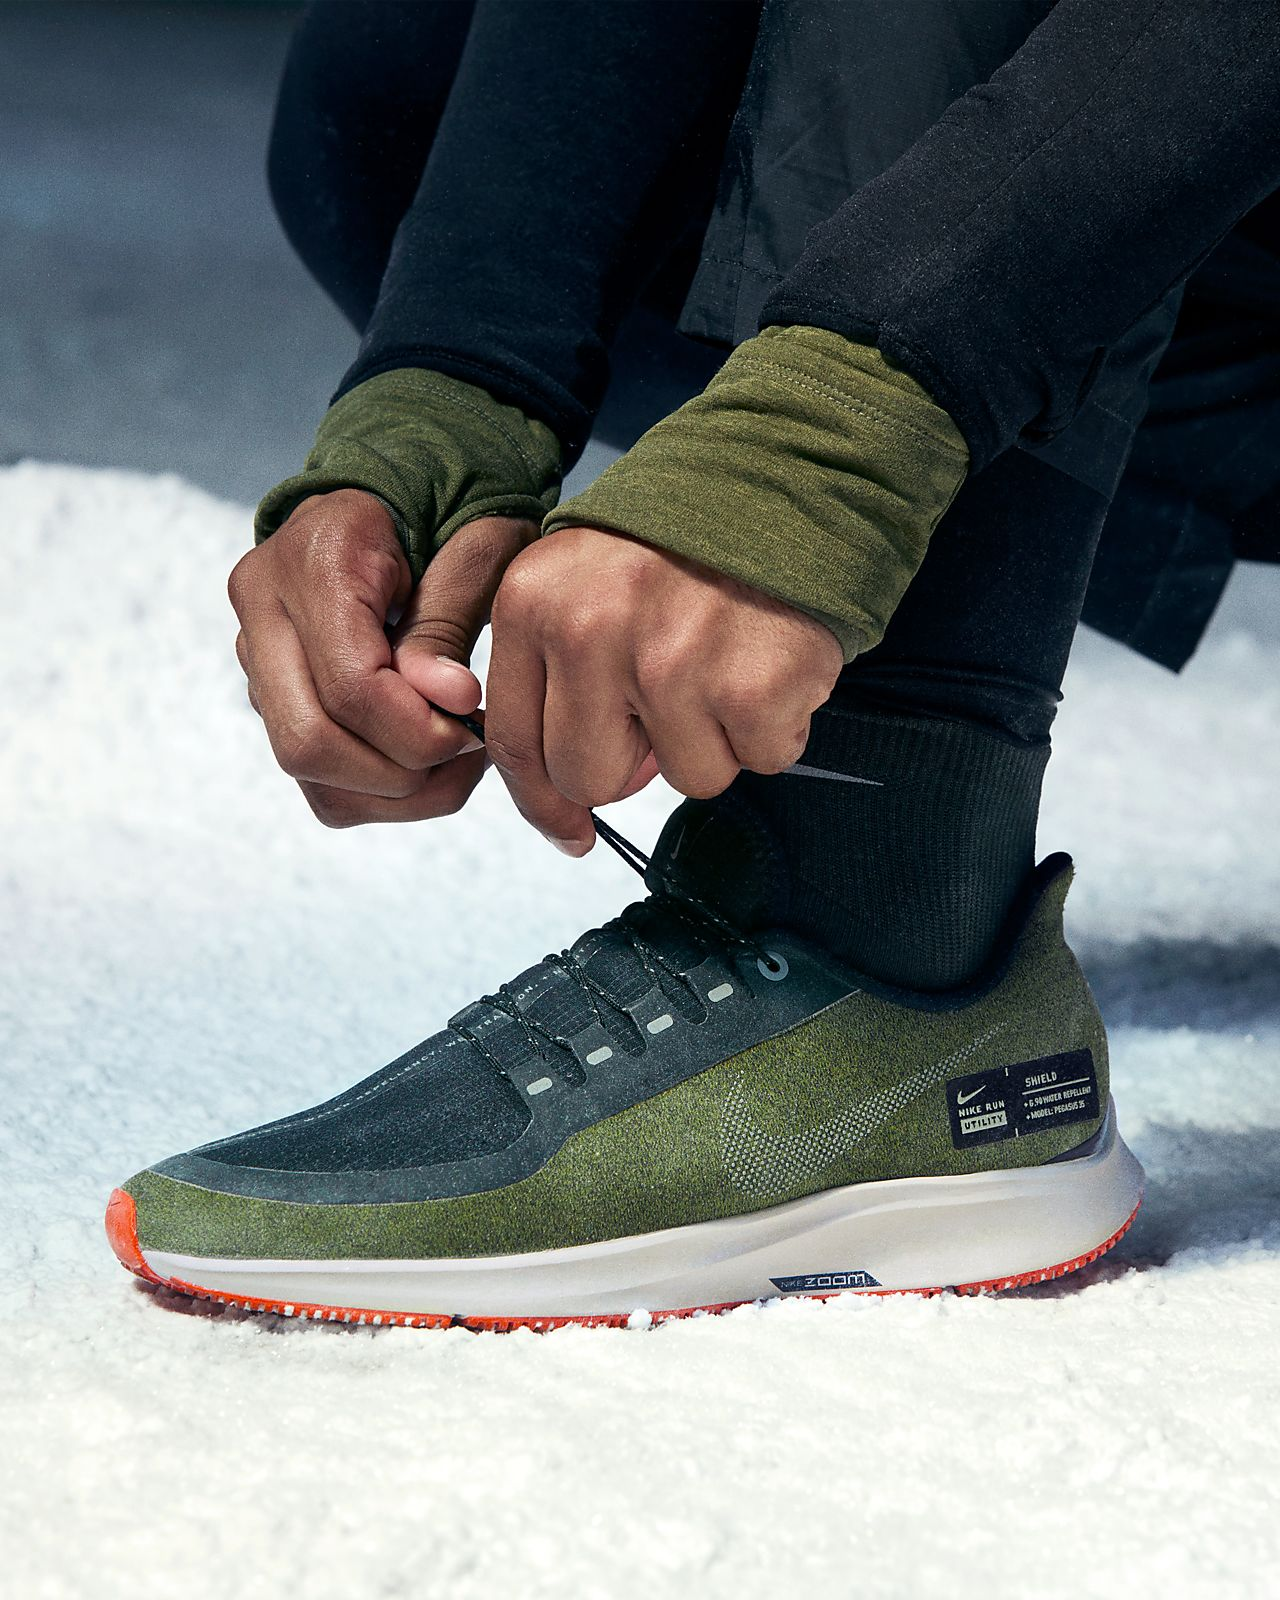 finest selection 970f7 ce787 ... Nike Air Zoom Pegasus 35 Shield Water-Repellent Men s Running Shoe